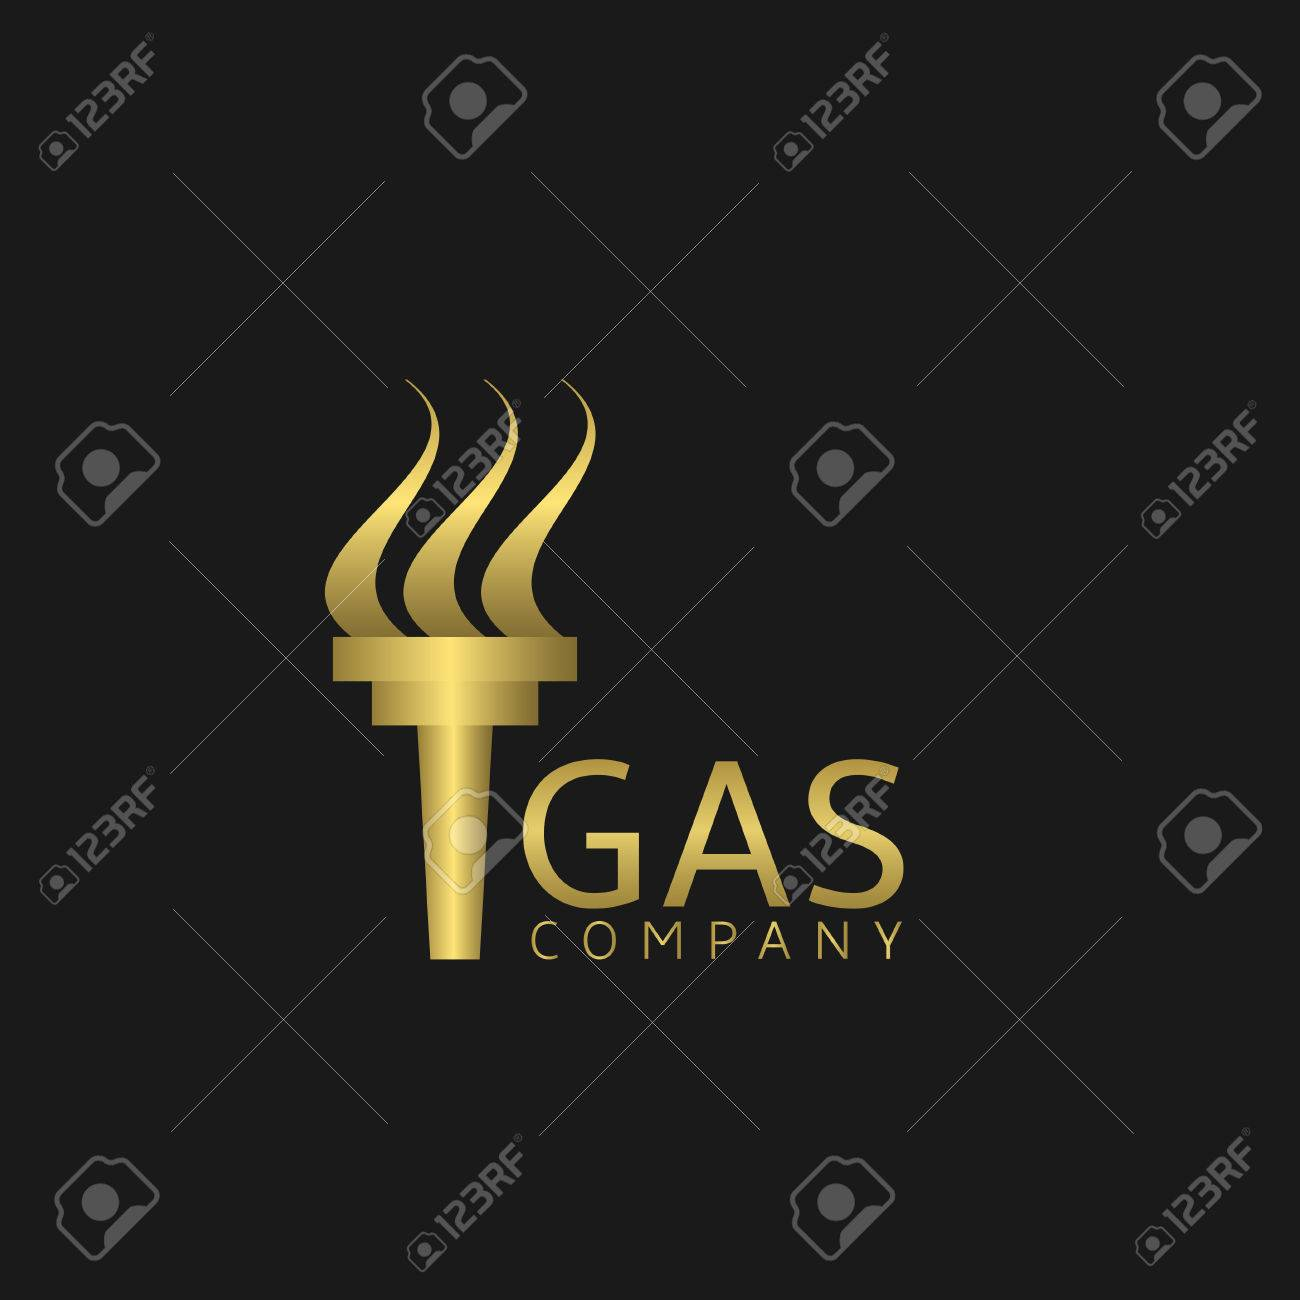 Gas Company Golden Emblem Gas Corporation Sign Royalty Free